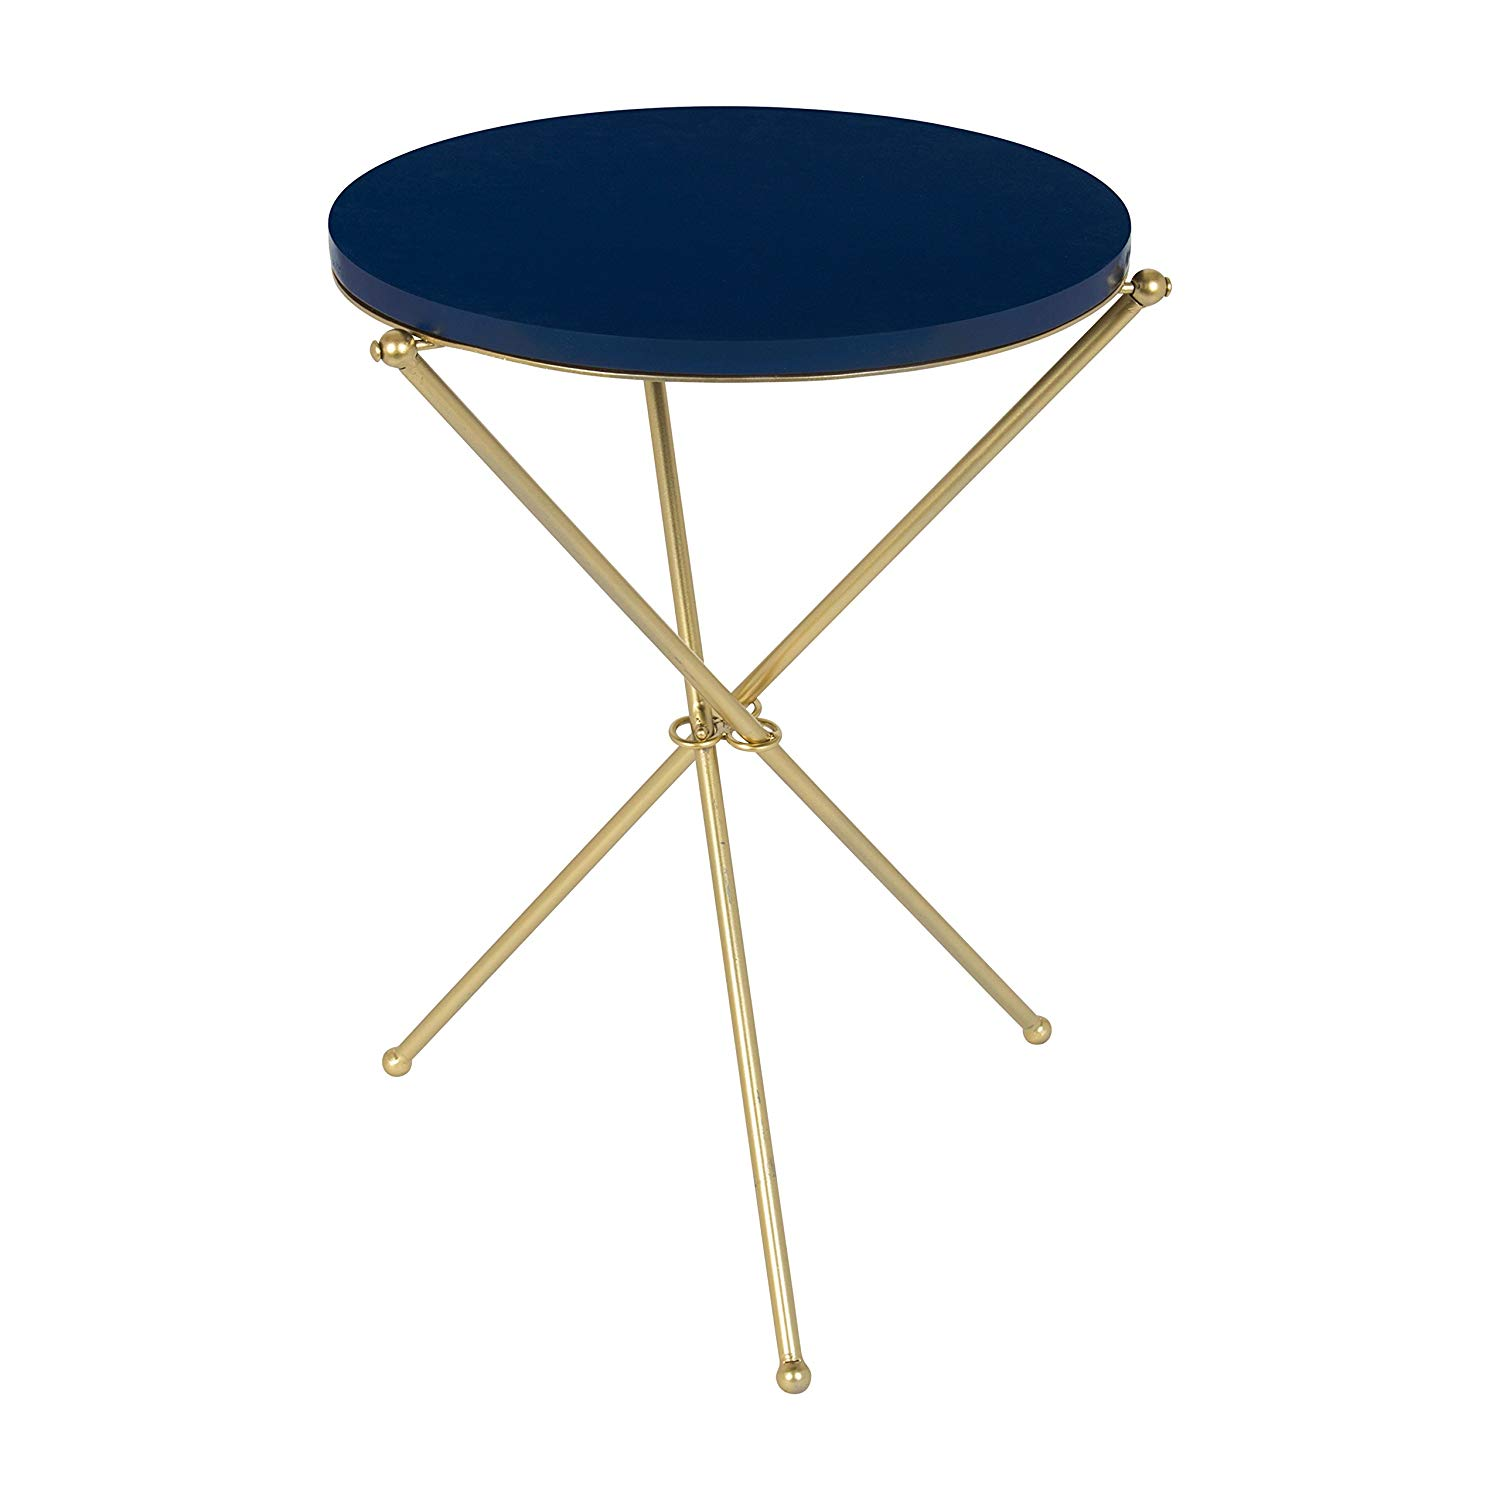 kate and laurel emellyn modern luxe folding side accent blue metal table with round painted wooden top tripod legs navy gold inch diameter credenza furniture mini lamp kitchen